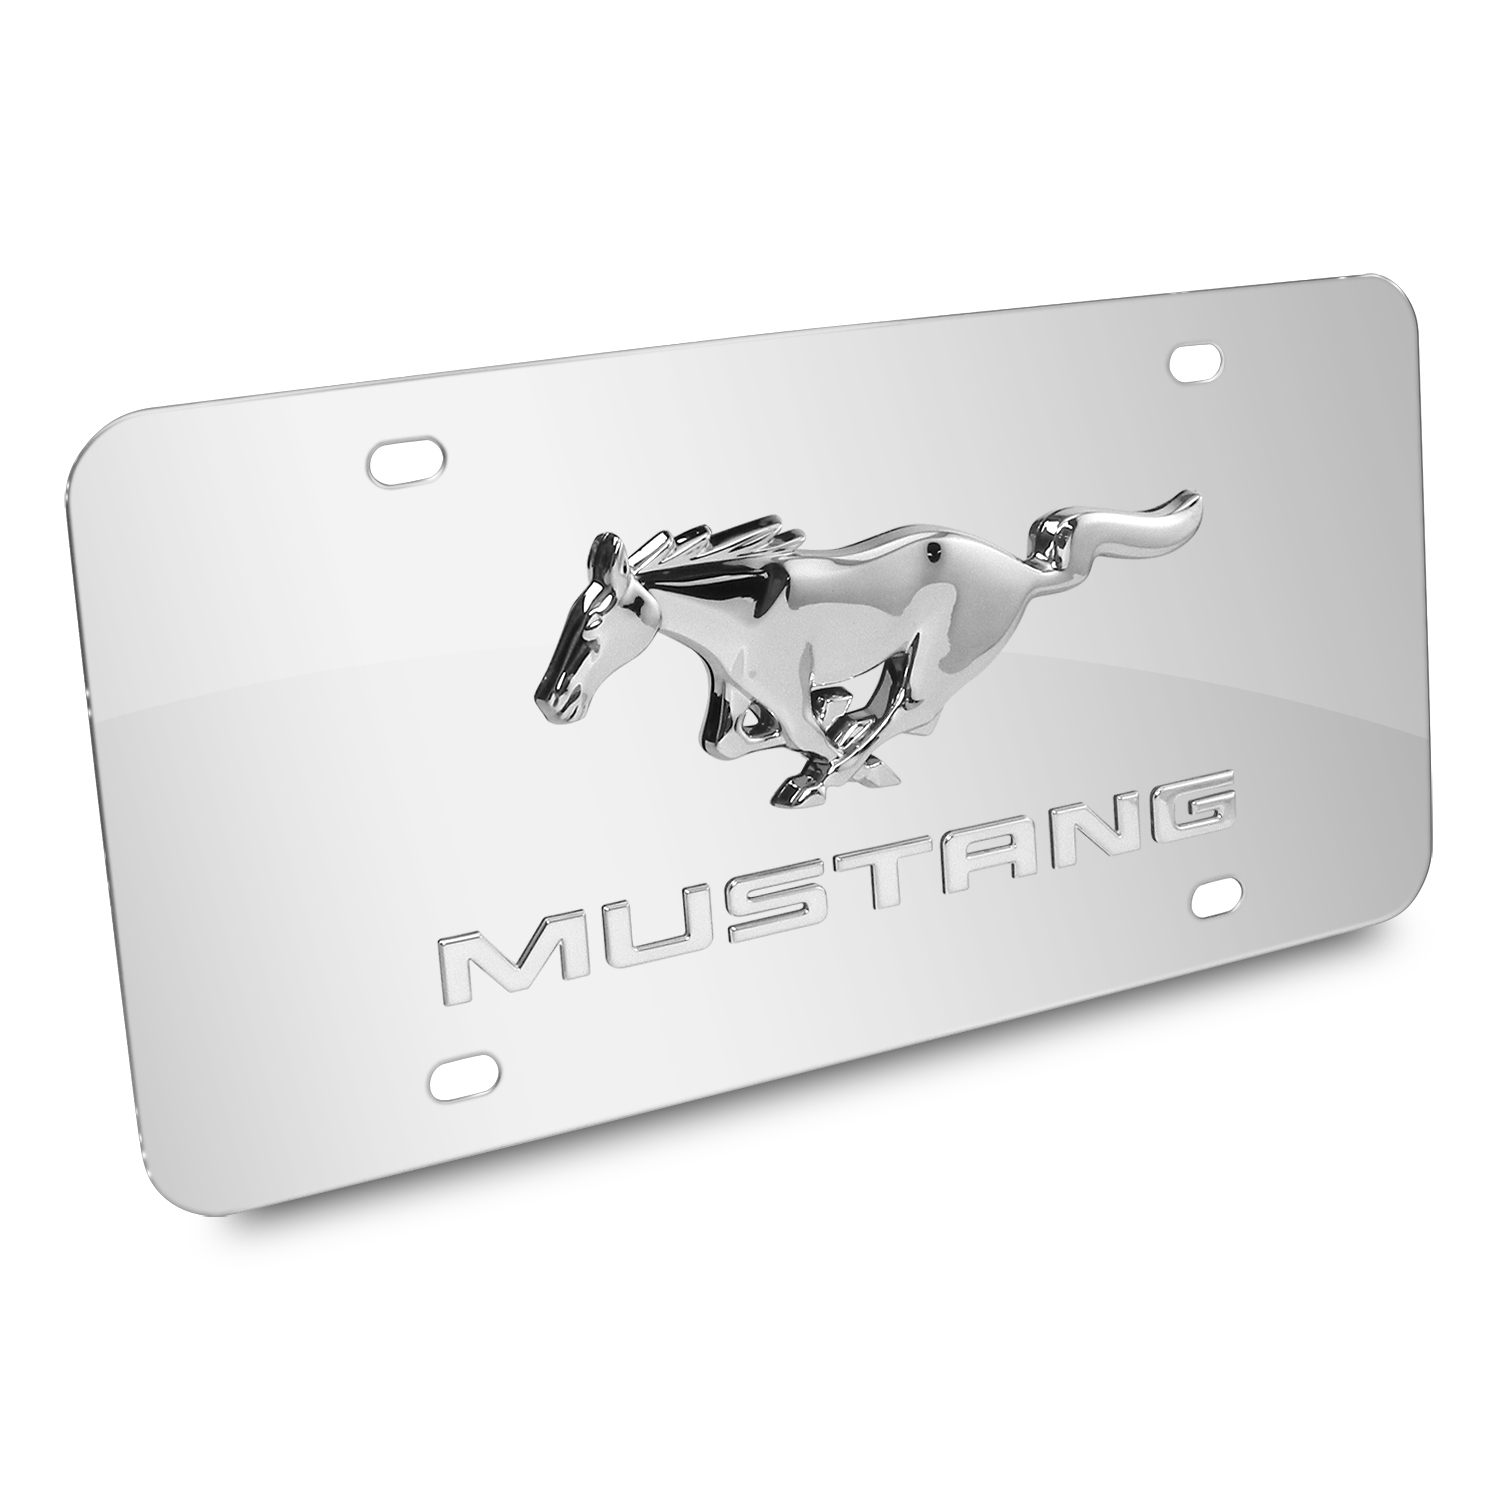 Ford Mustang Double 3D Logo Chrome Stainless Steel License Plate